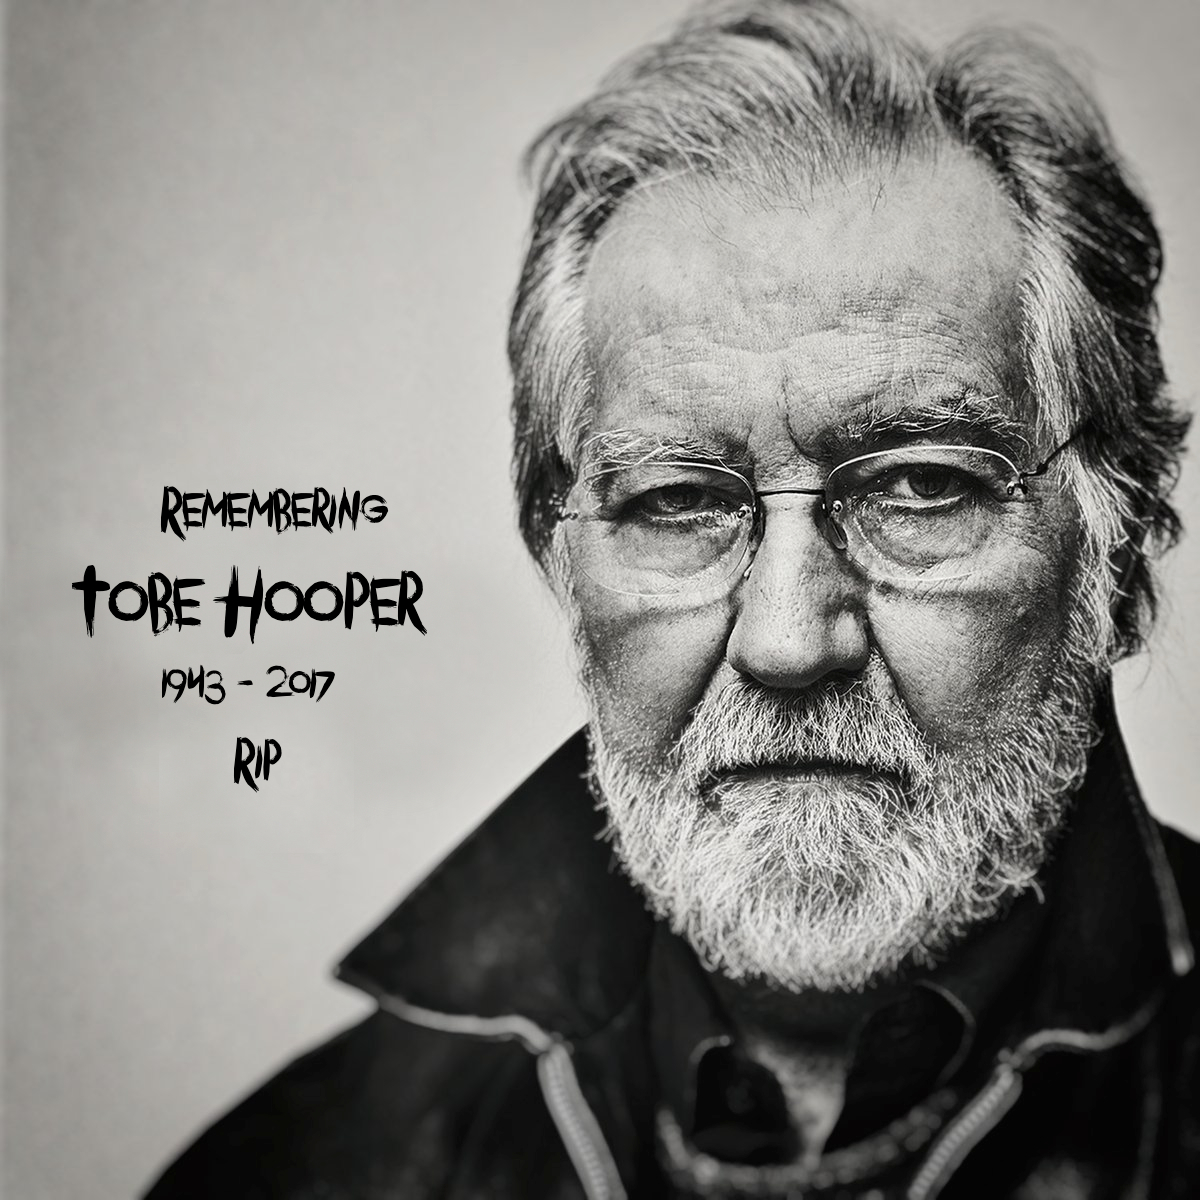 Remembering Tobe Hooper